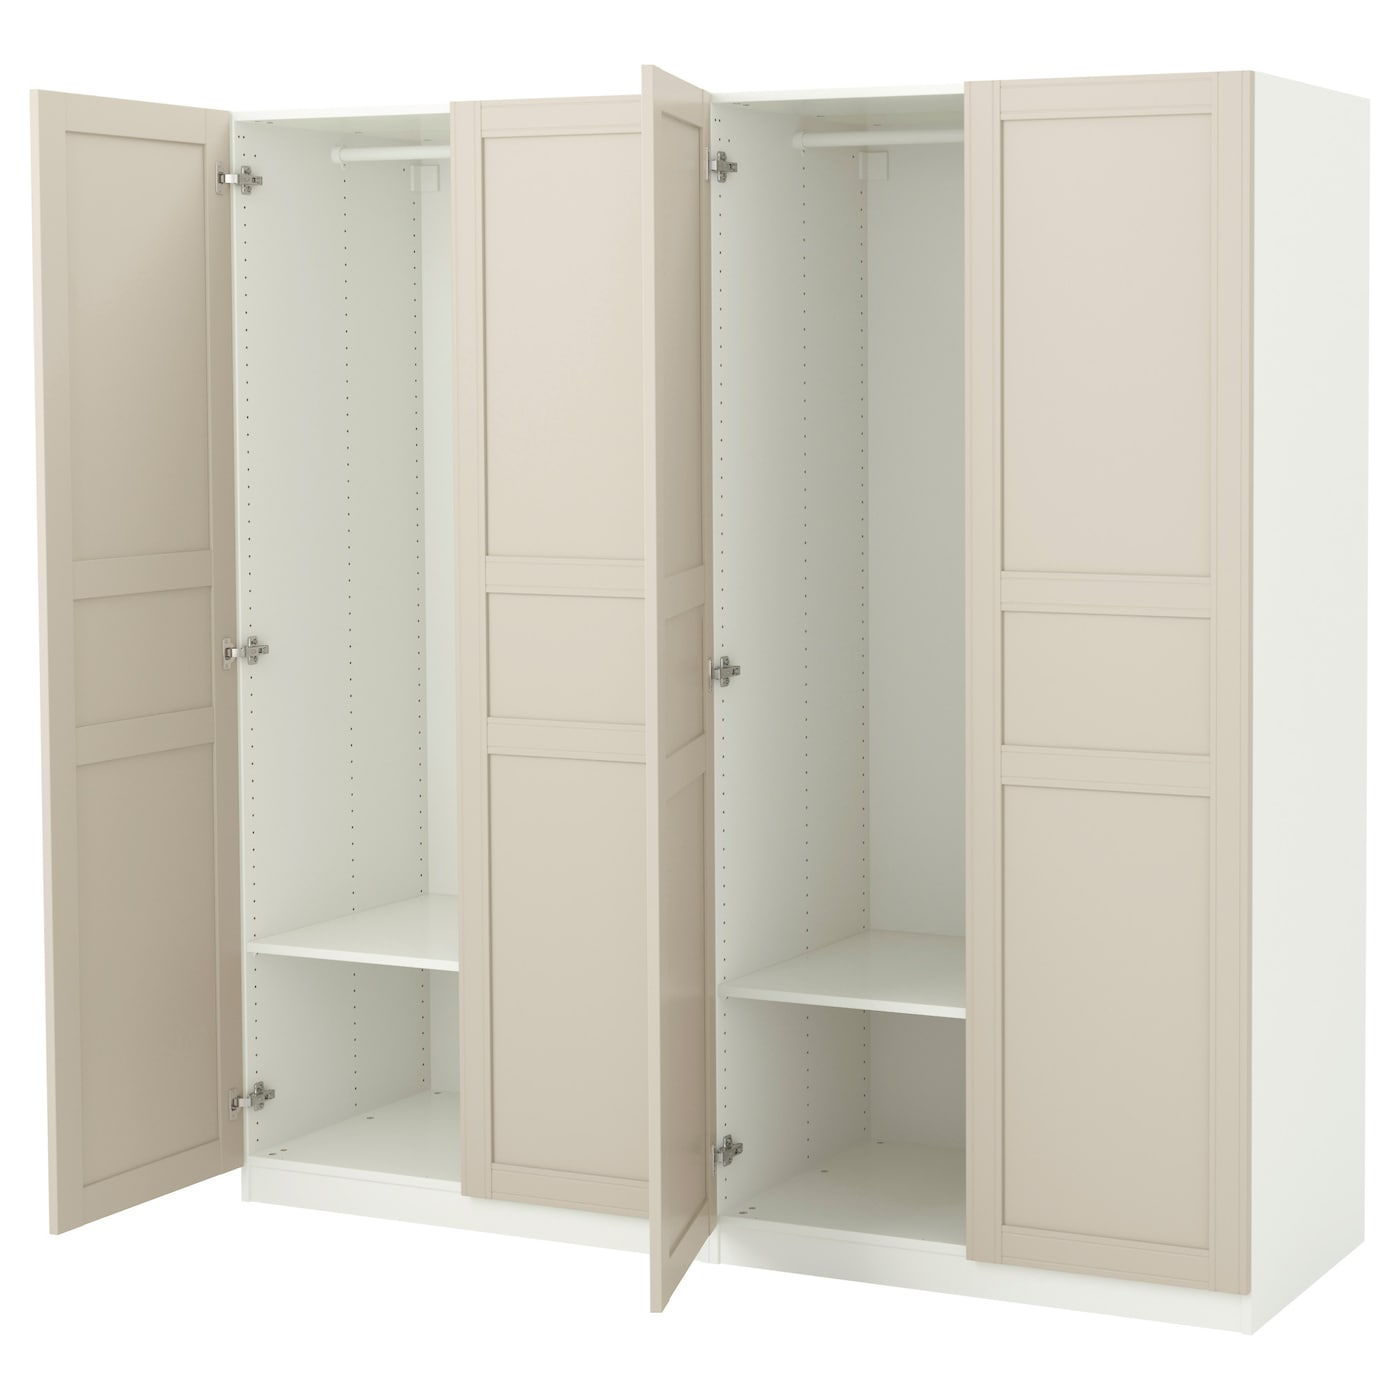 bedroom of wood in i and ikea using decoration design white closet island l pictures small walk shape storage marvelous including narrow magnificent